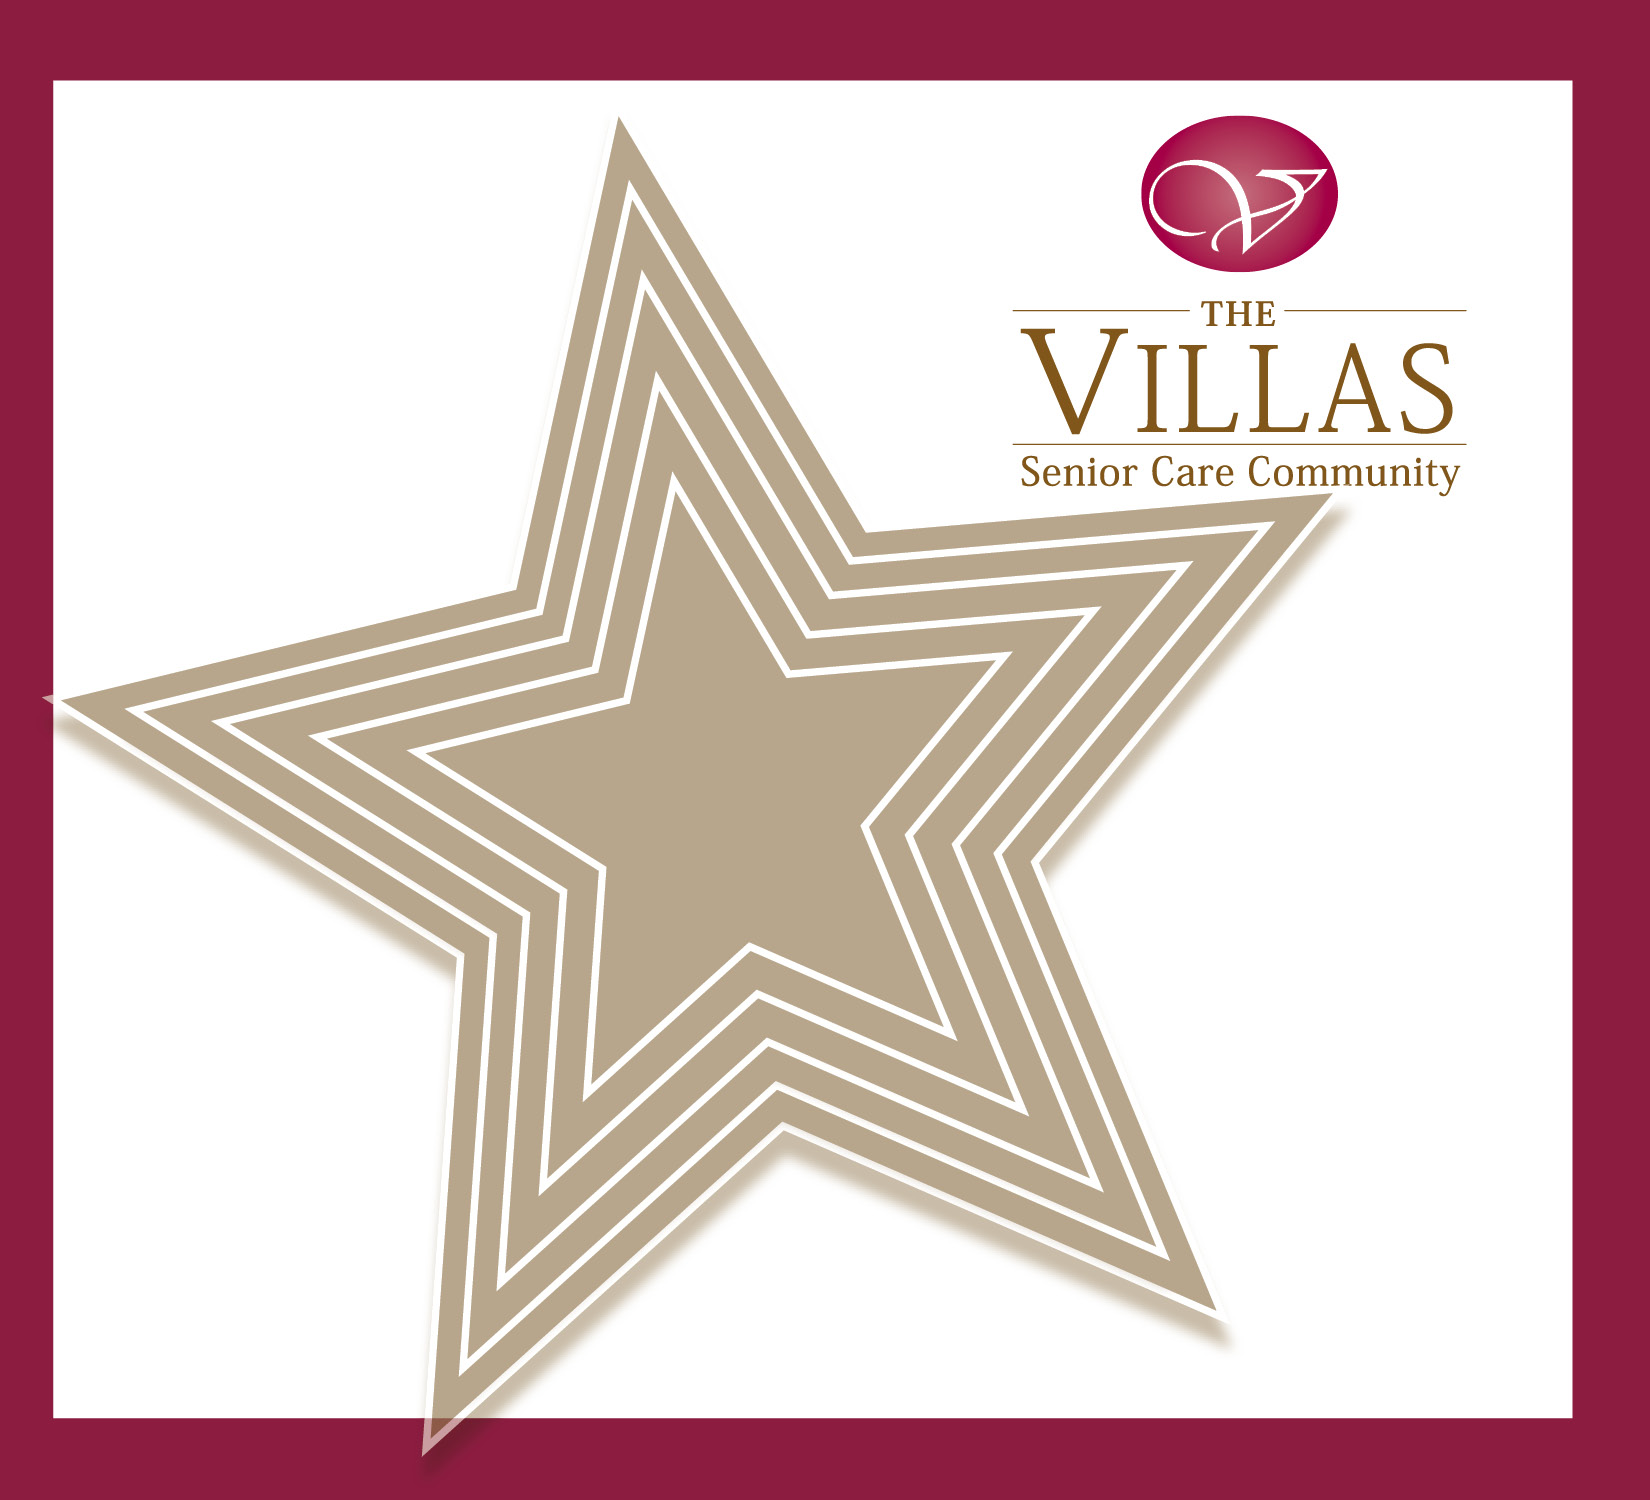 Five Star Rating for The Villas.